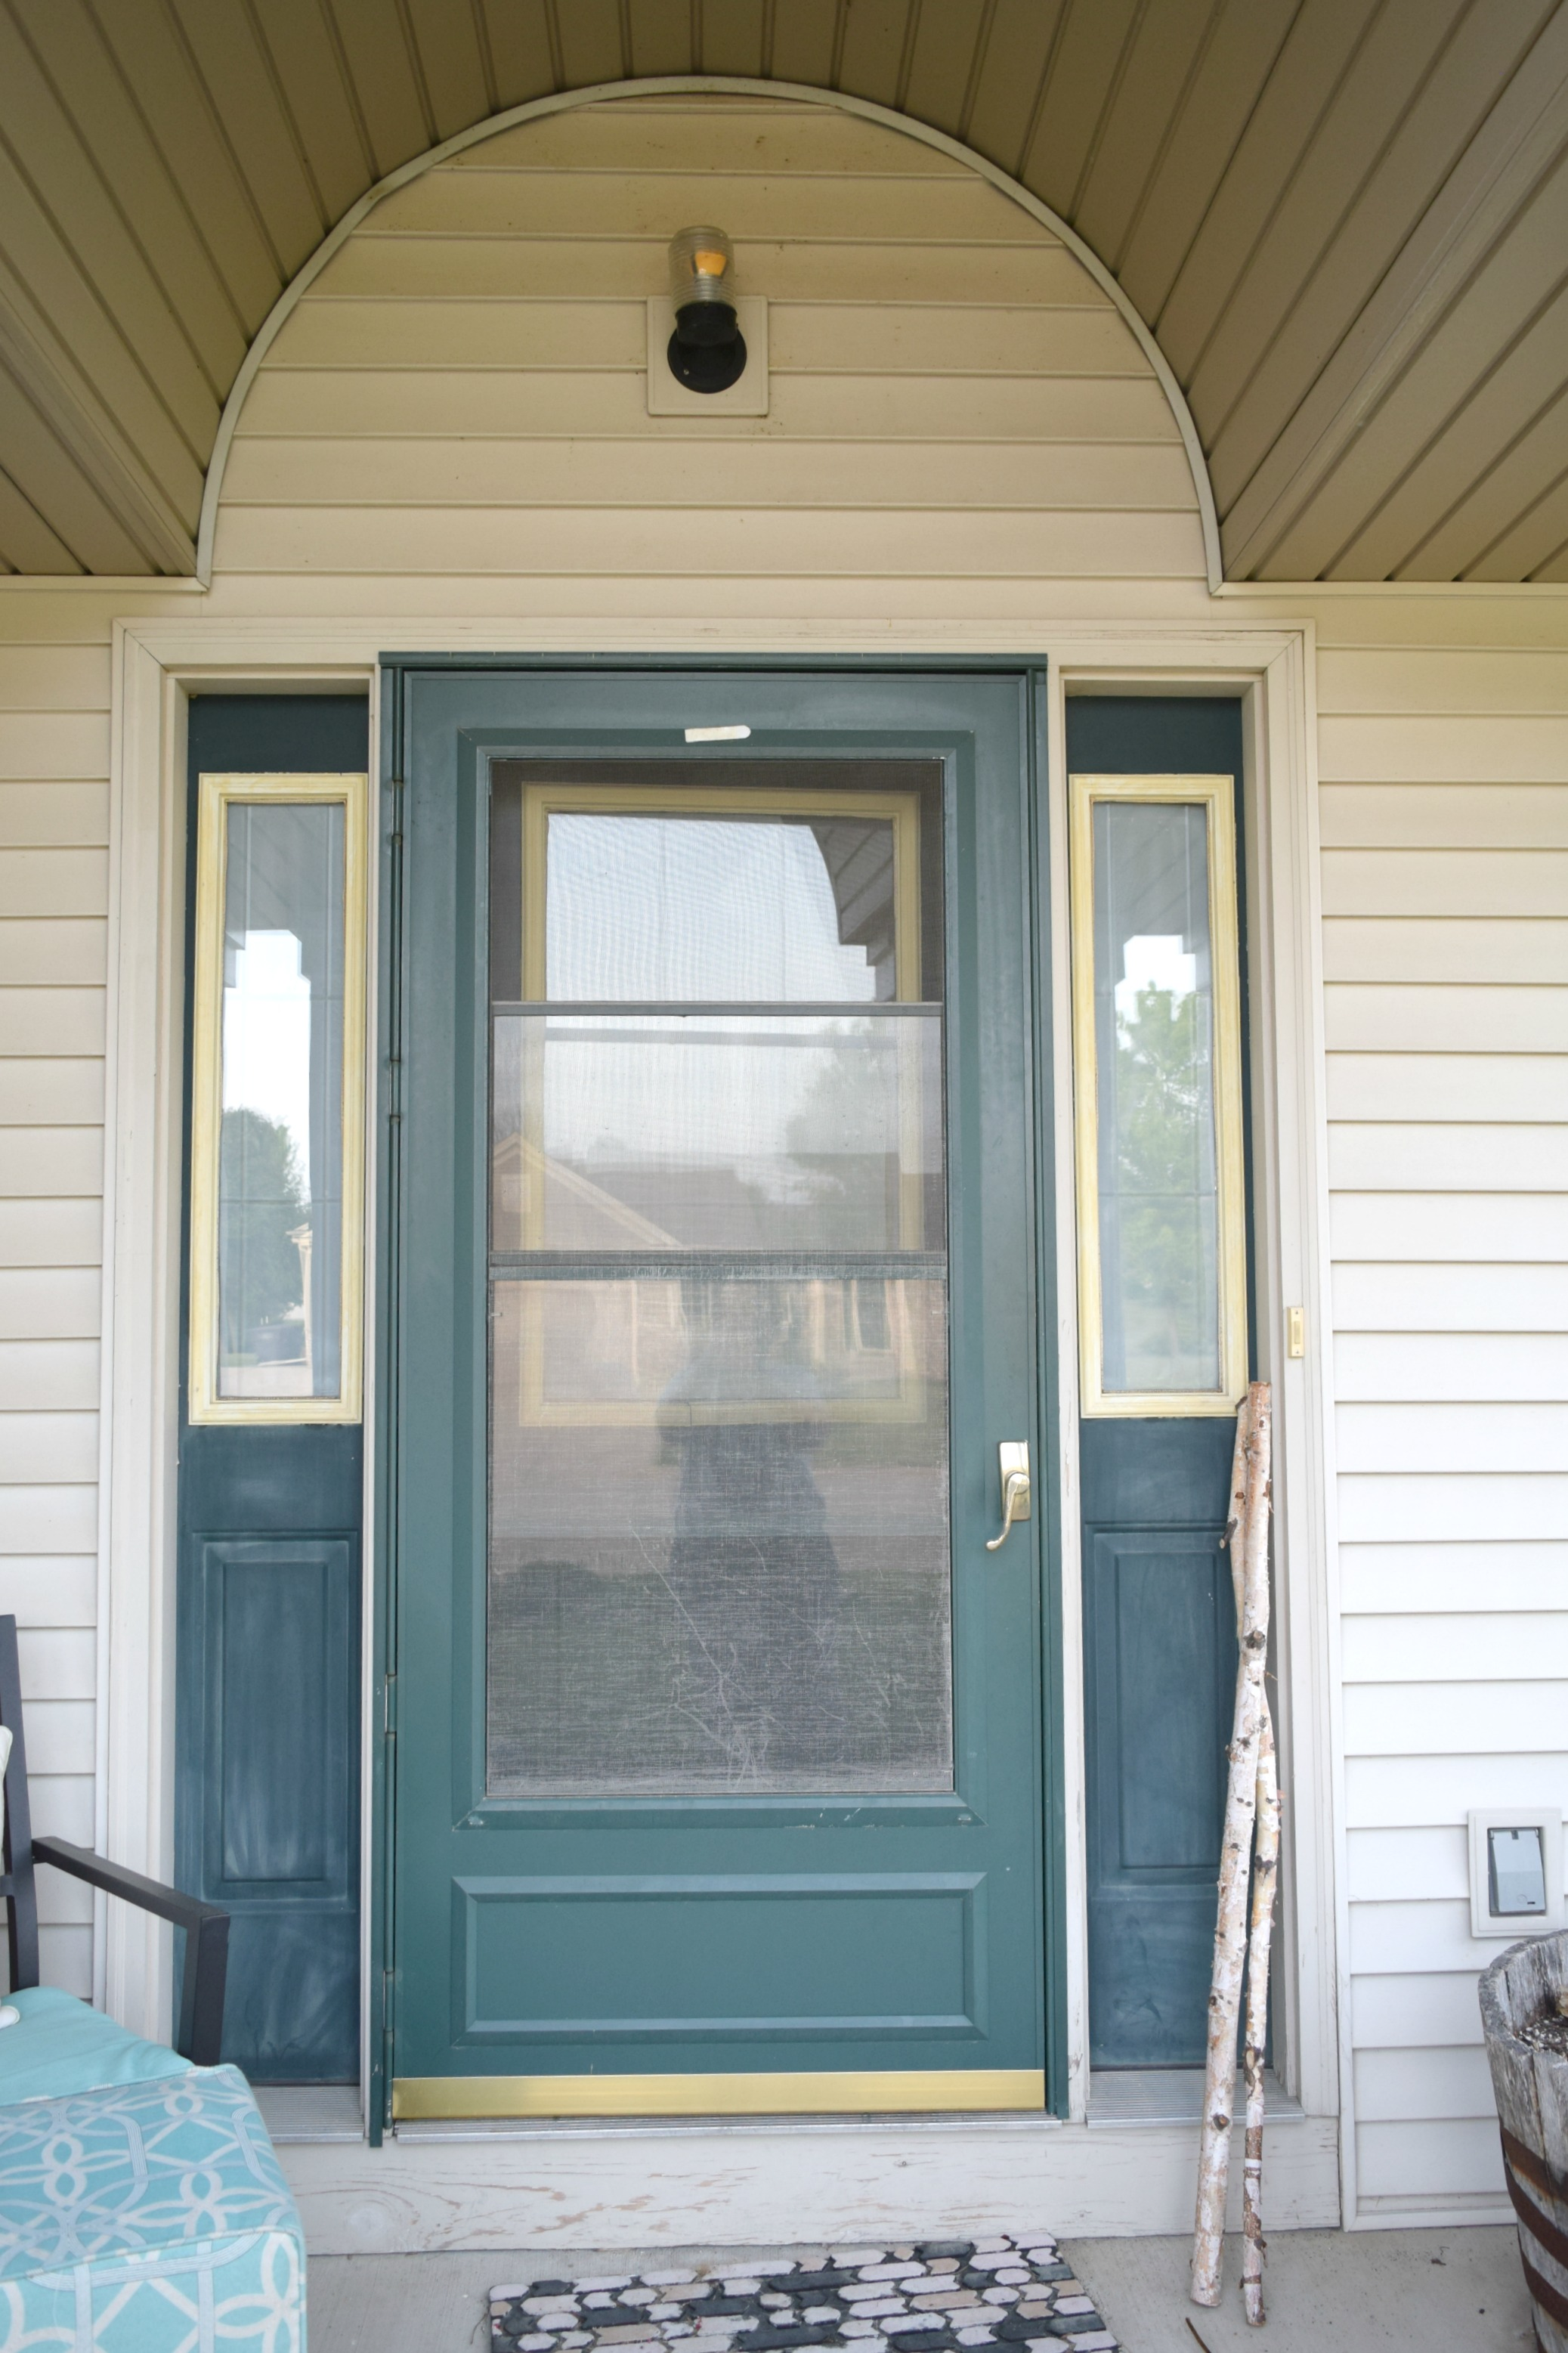 Adding curb appeal, how to paint shutters and front door • Our House ...